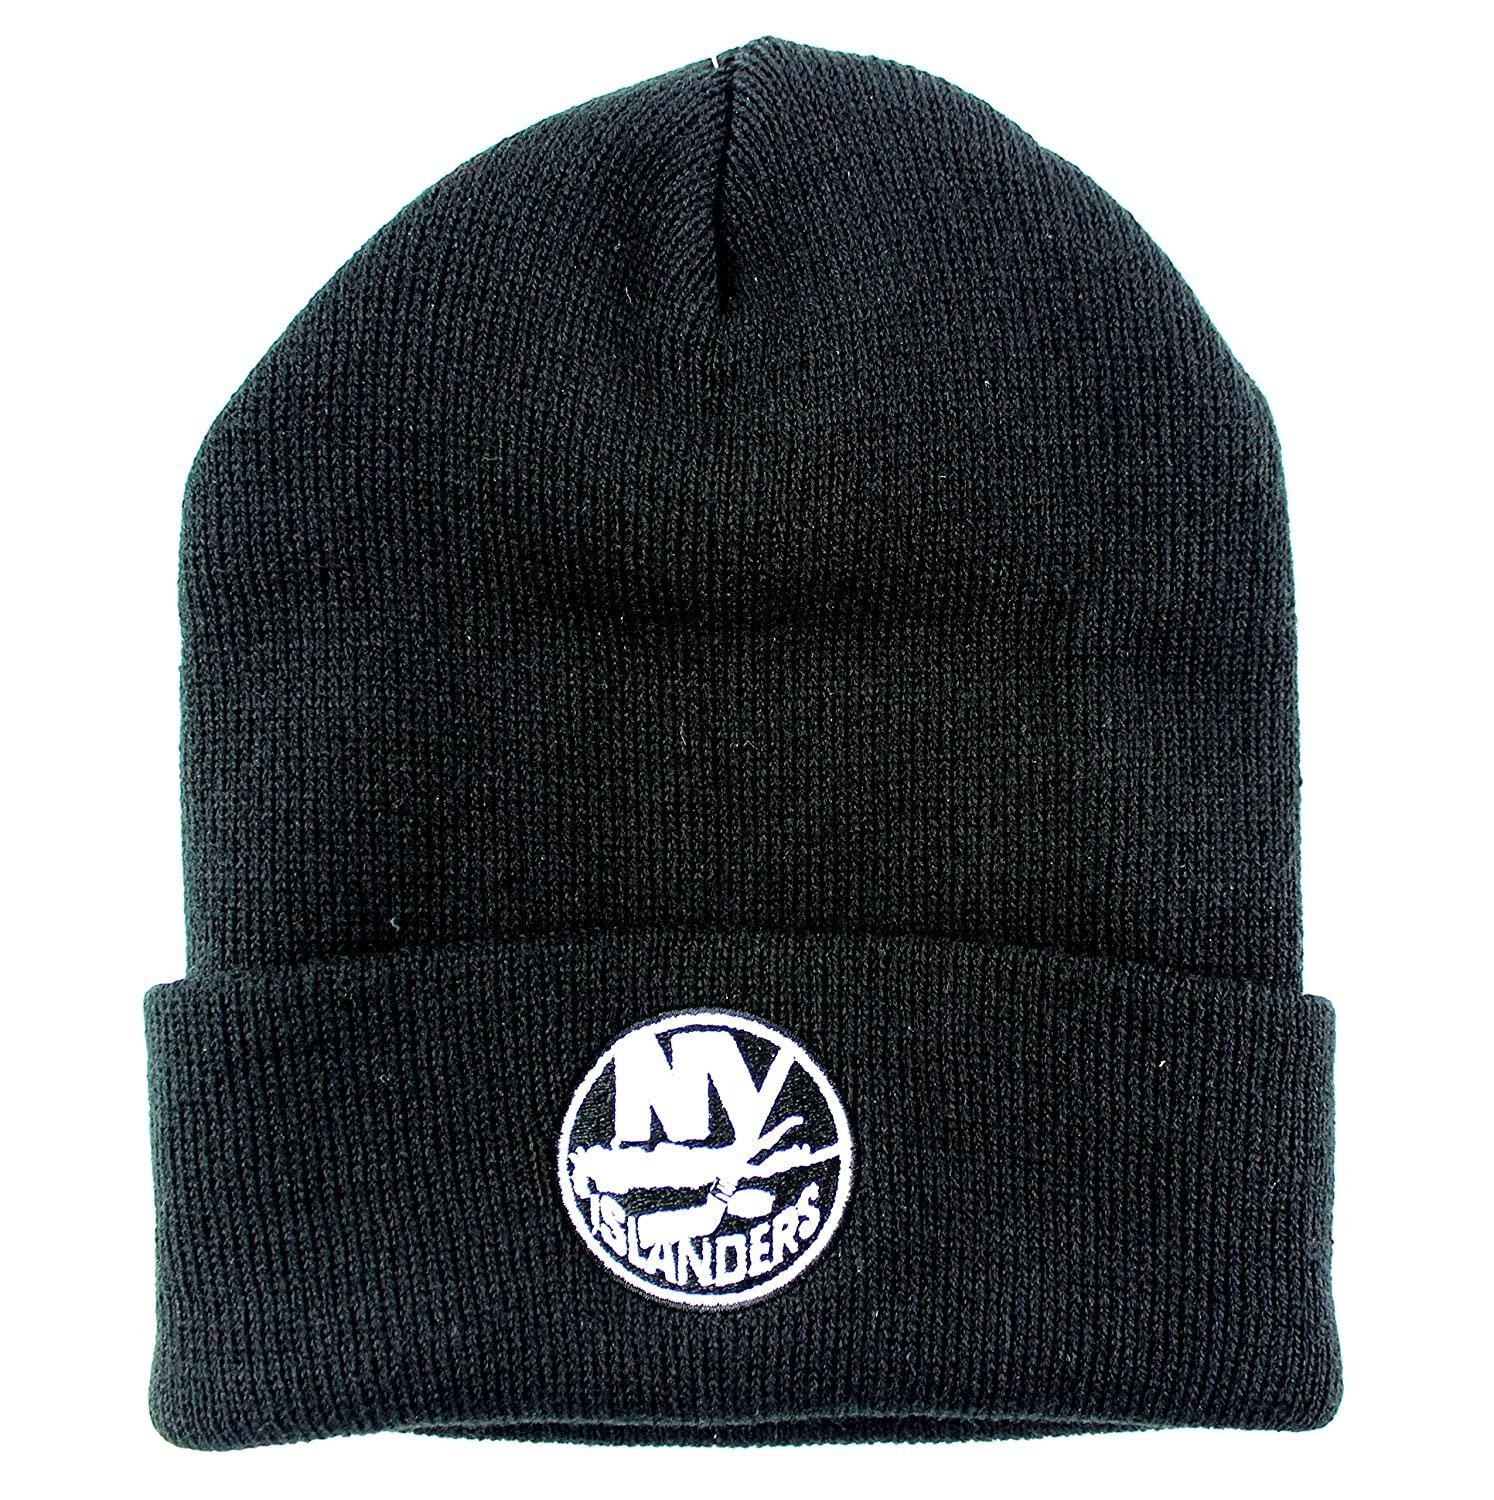 New York Islanders NHL Basic Beanie Cuffed Knit Hat Black